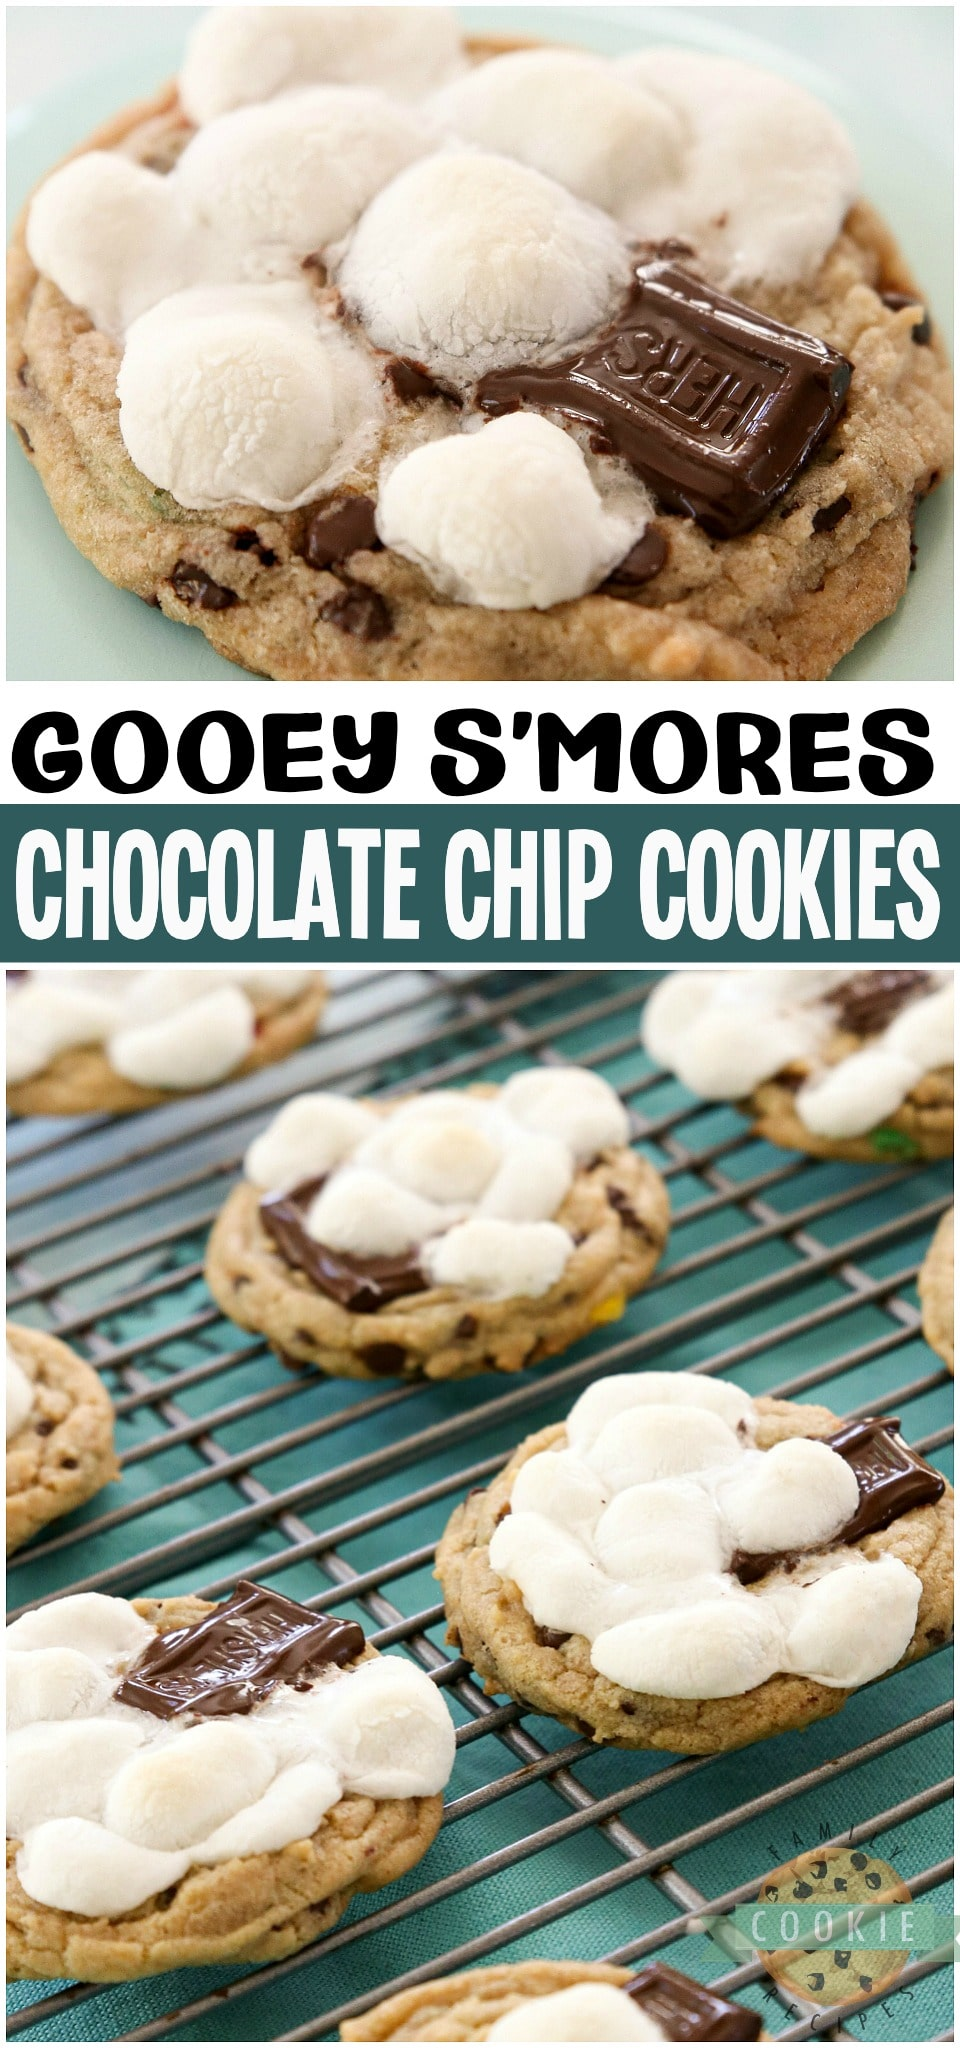 S'mores Cookies jam packed with marshmallow chocolate amazingness! Soft pudding cookies with mini chocolate chips & M&M's topped with marshmallows and a piece of chocolate. Easily the BEST S'mores Cookies EVER! #smores #cookies #chocolateship #baking #recipe from FAMILY COOKIE RECIPES via @buttergirls